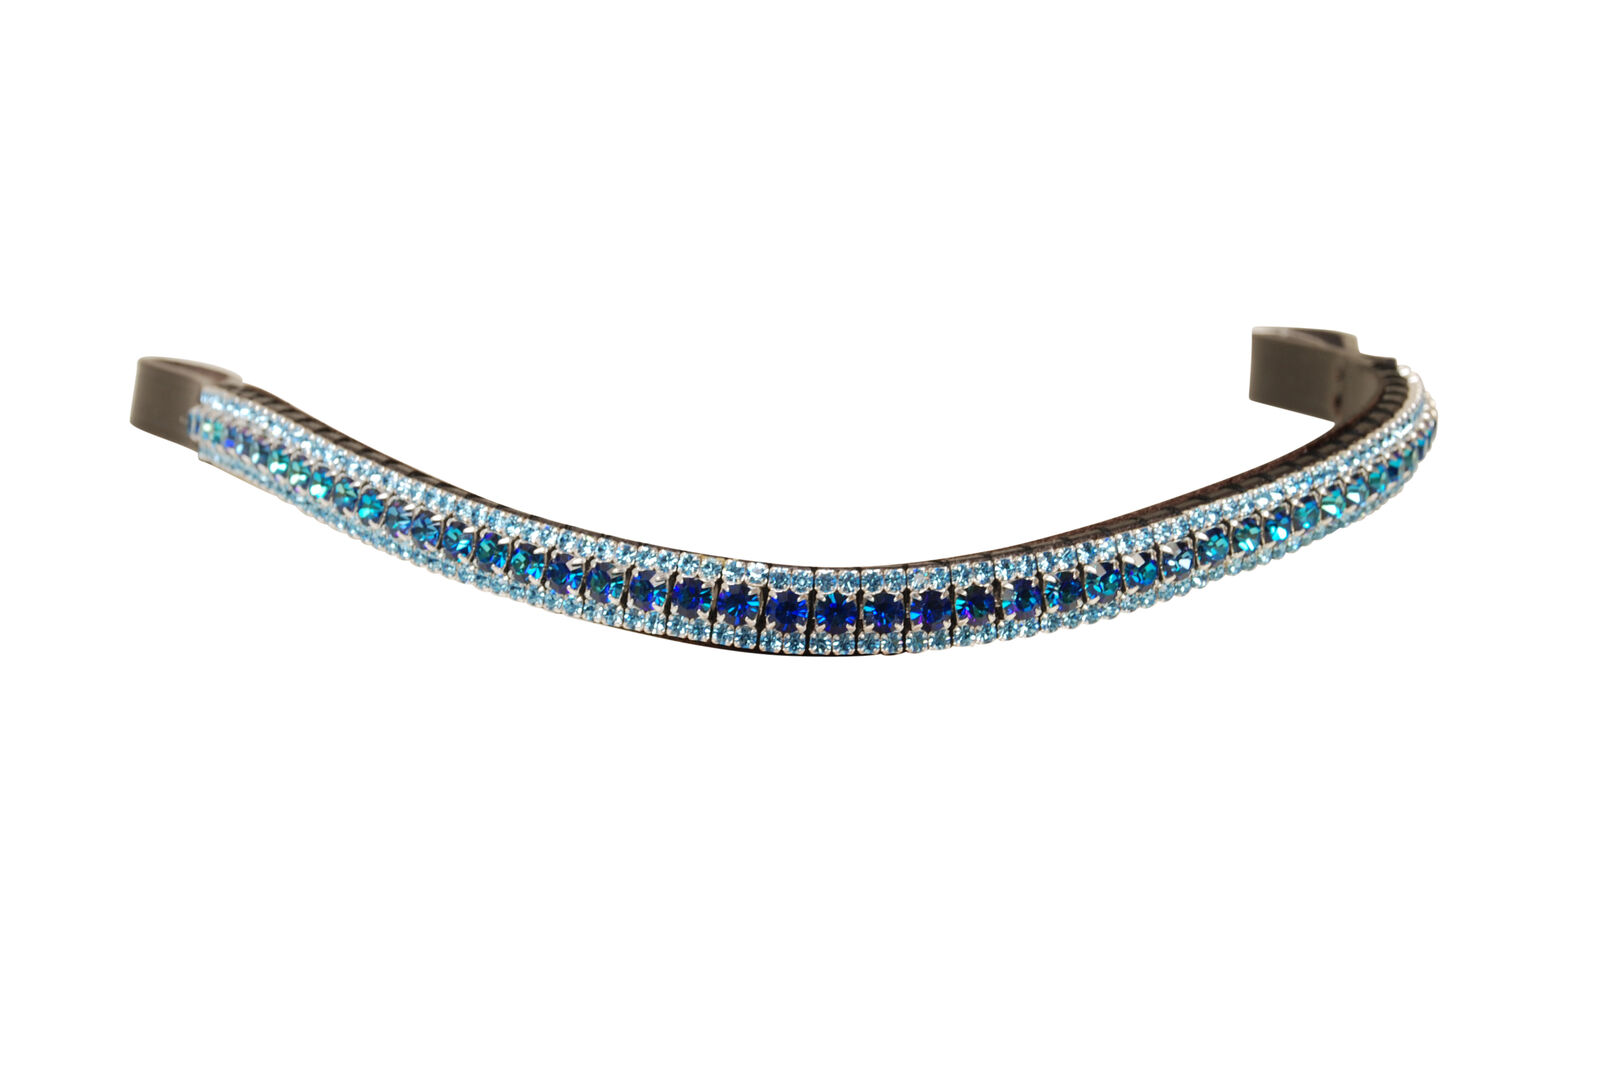 Equiture Bermuda bluee and Aqua Curve Browband